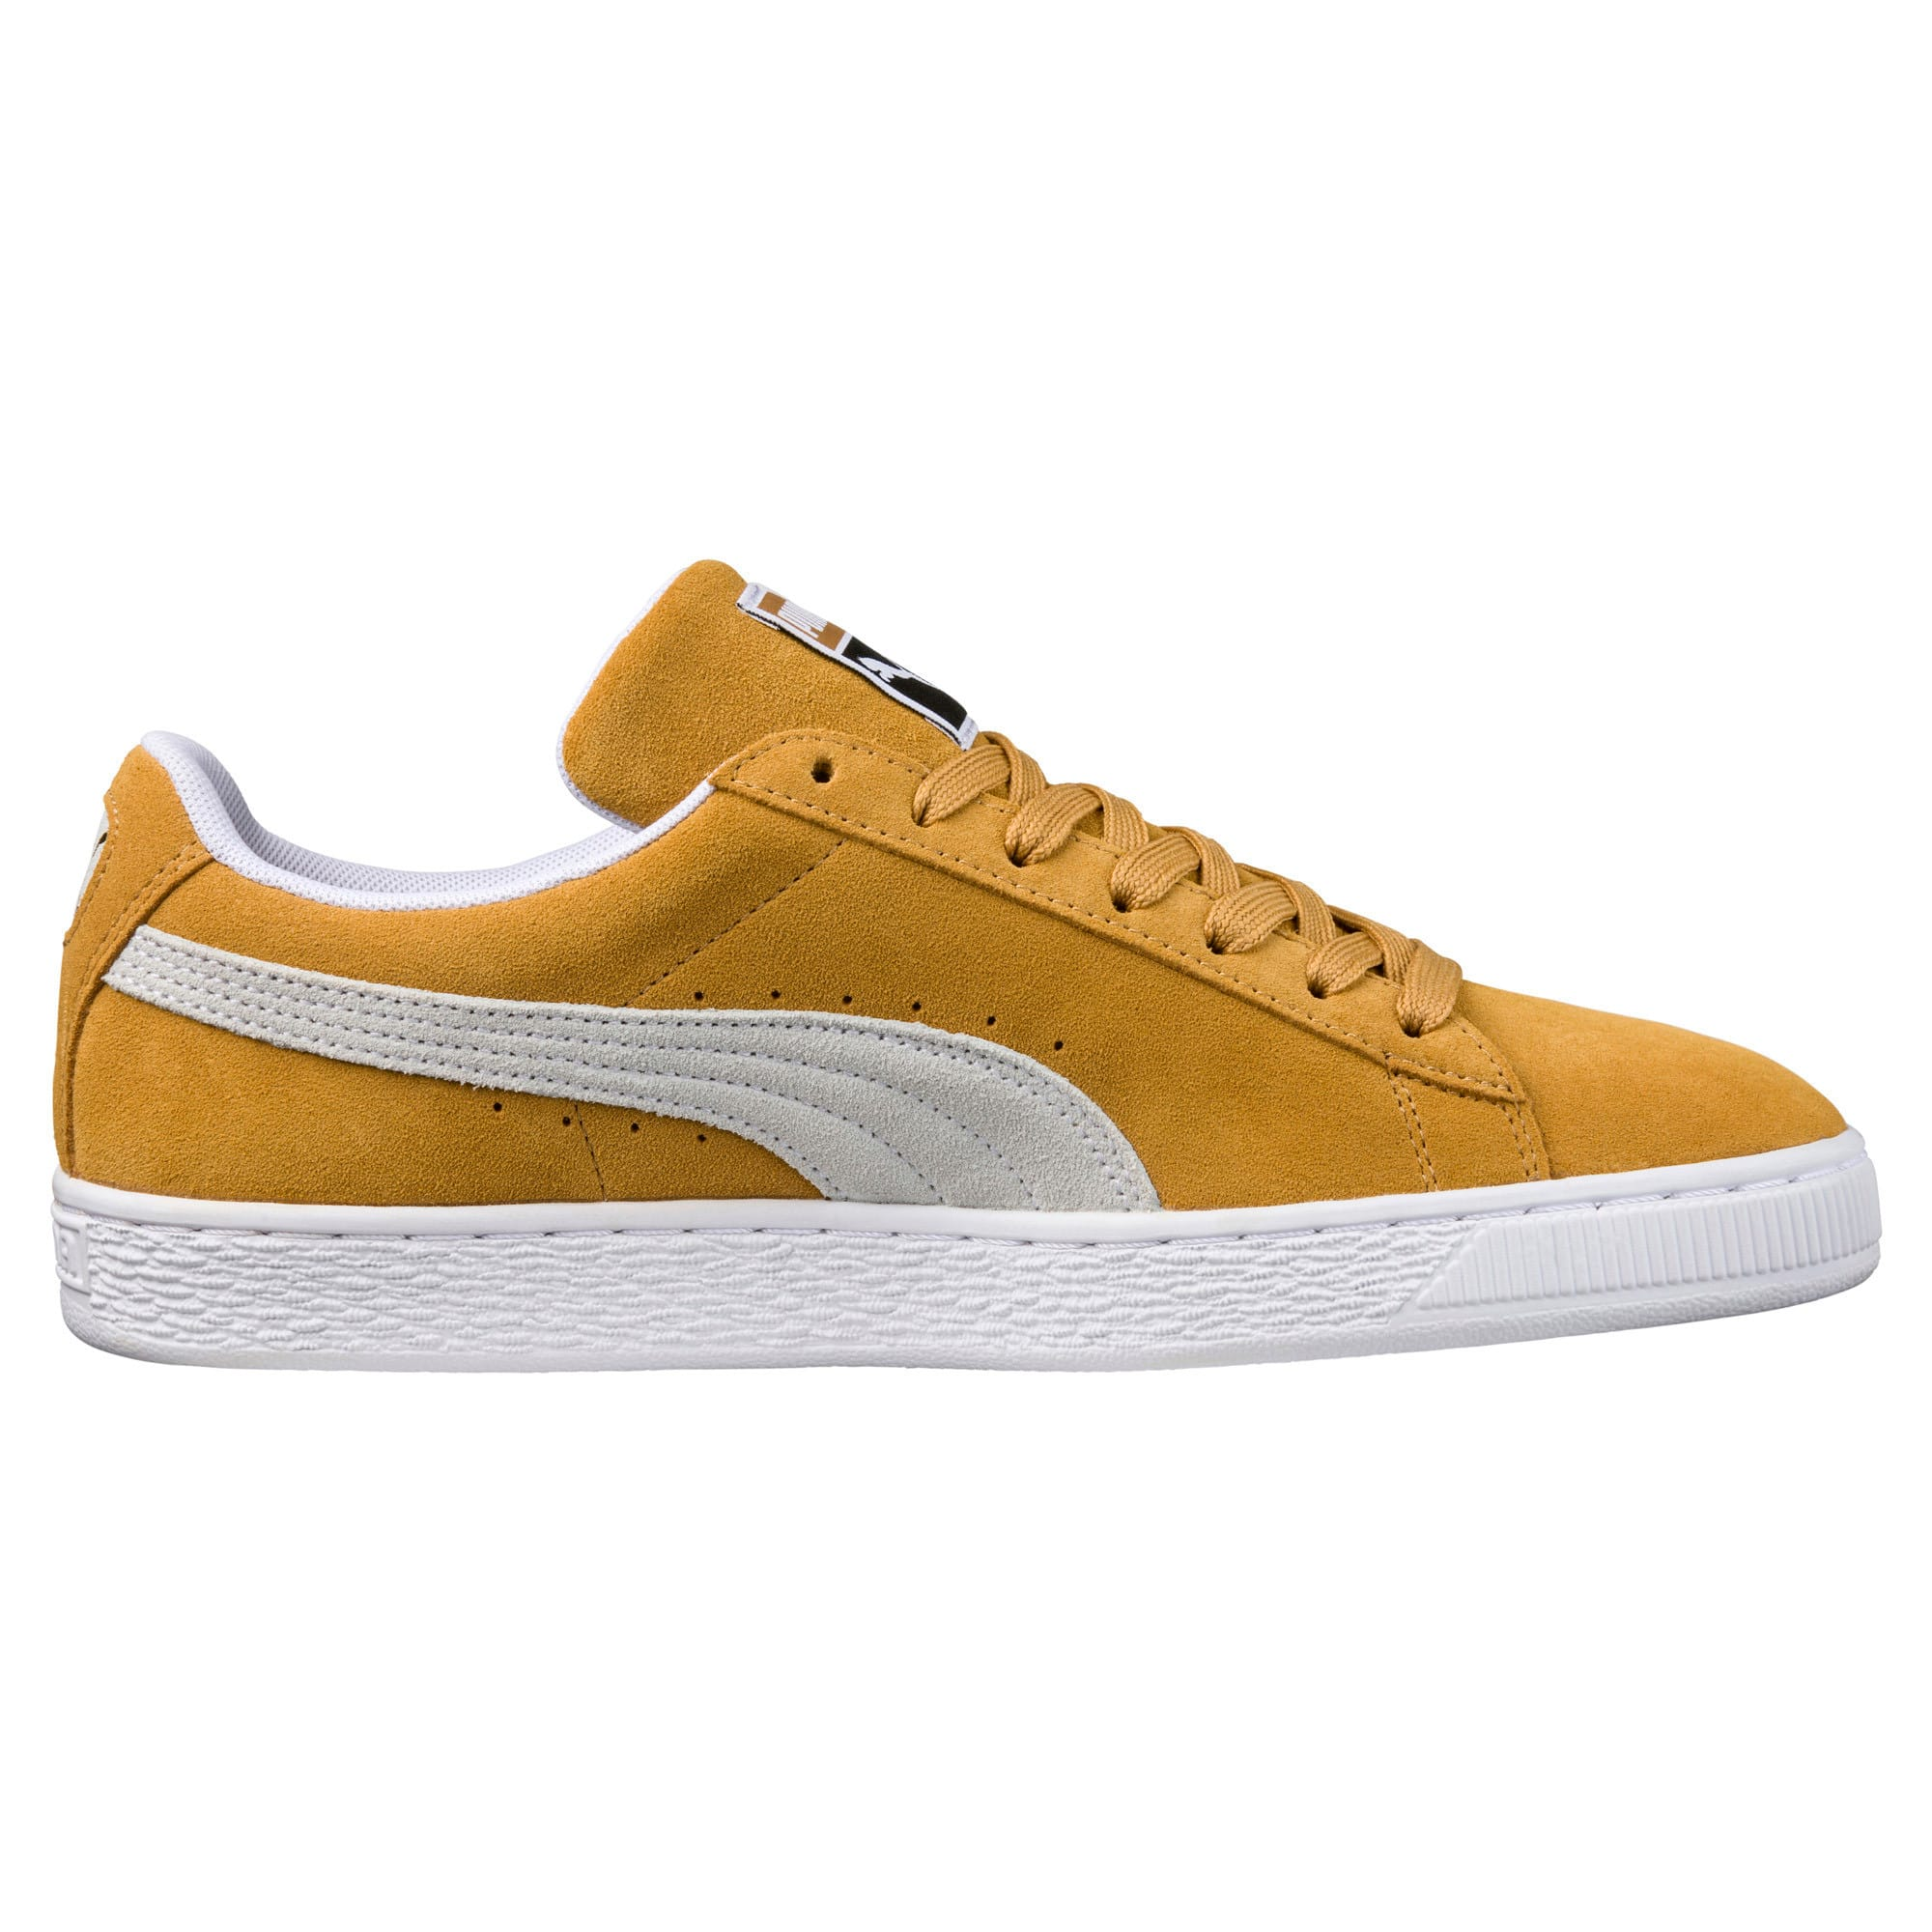 Thumbnail 3 of Suede Classic Trainers, Honey Mustard-Puma White, medium-IND